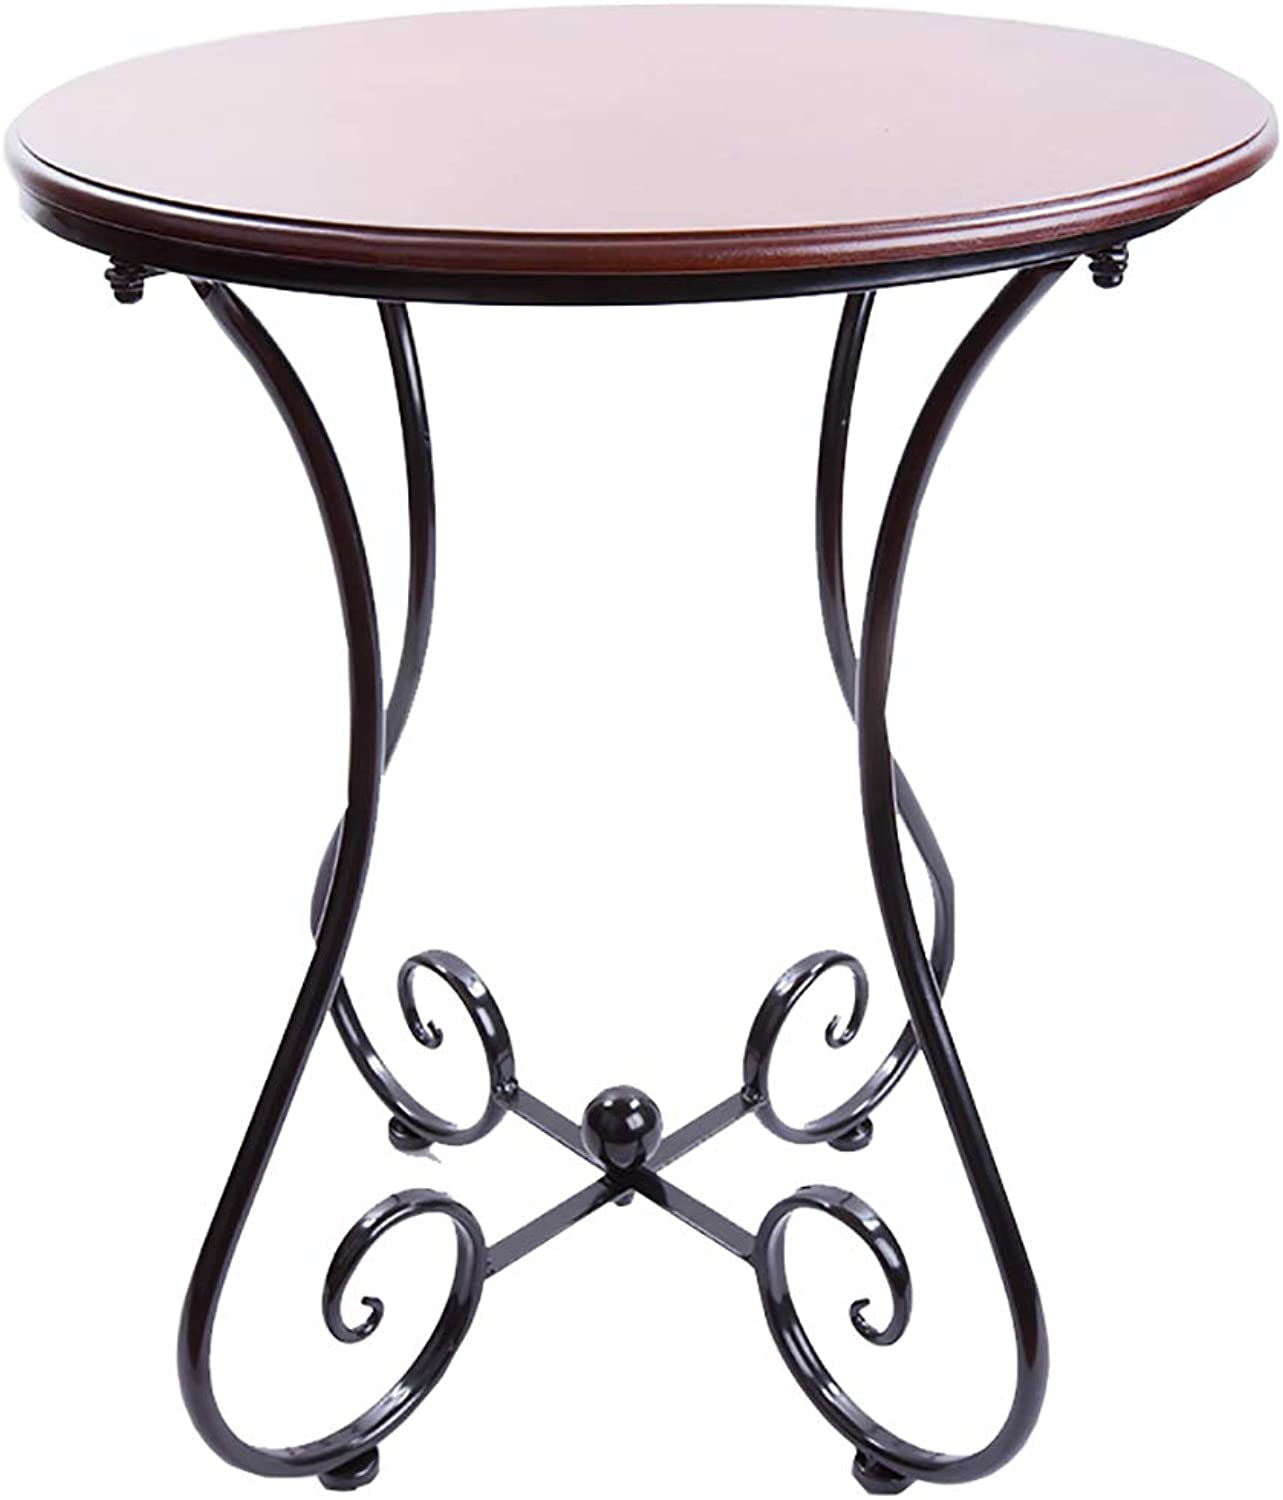 Round Coffee Table with Small Corners and a Few Telephone Tables with Metal Frame Easy Assembly Wood for Bedroom Parlor Enterprises Restaurant